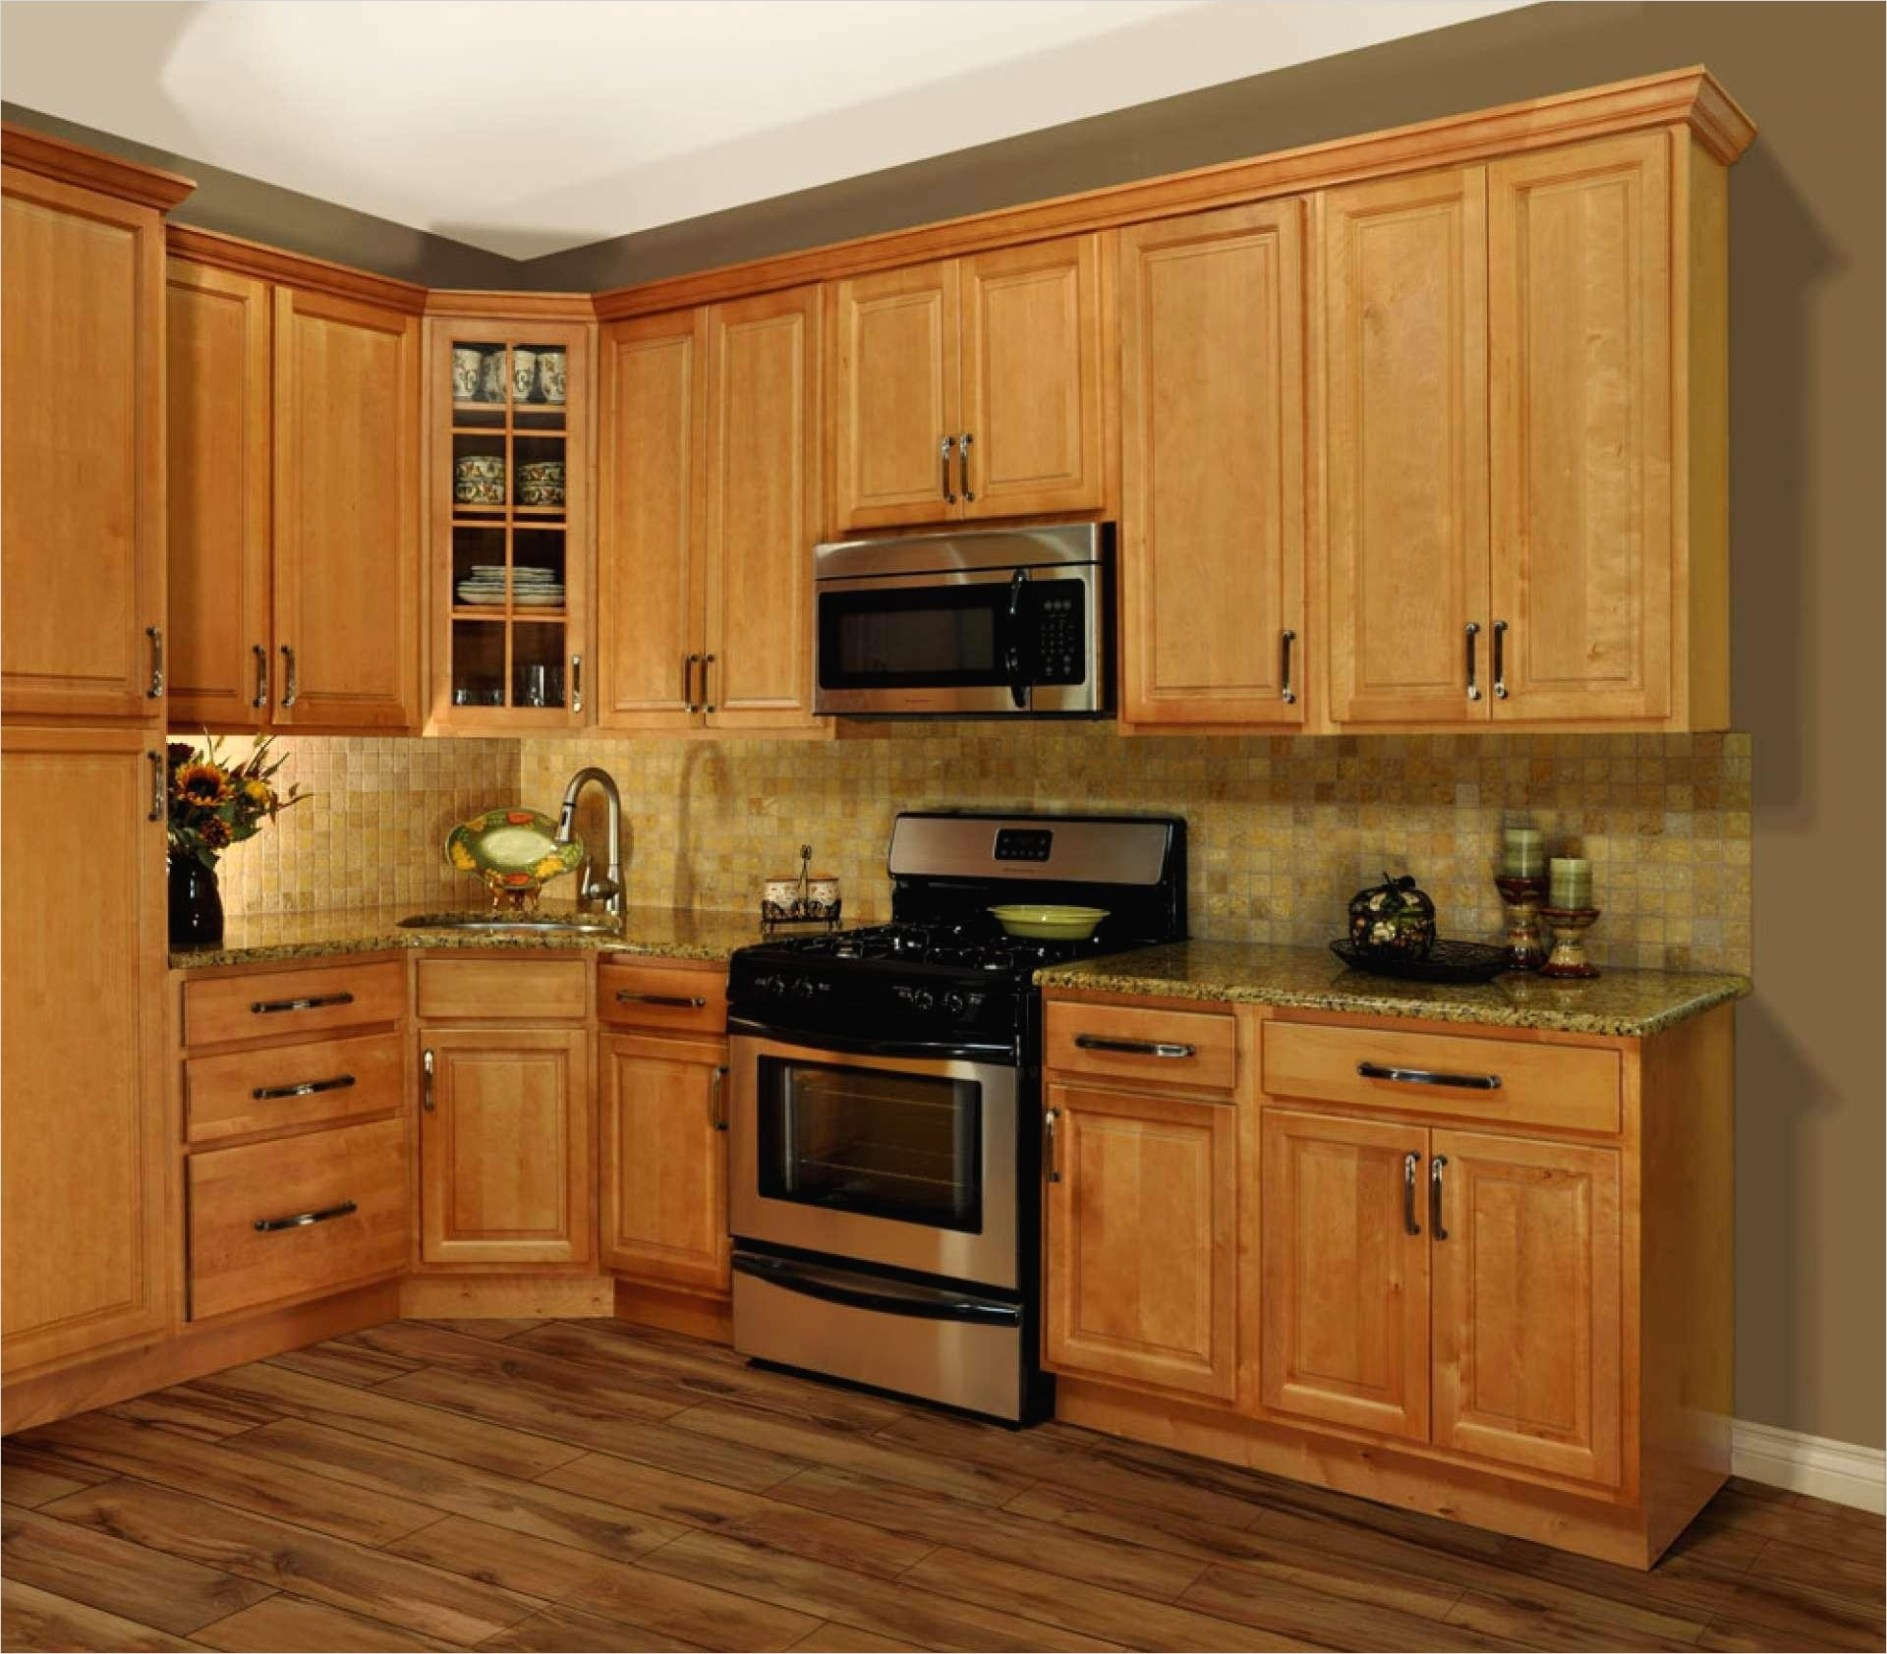 Kitchen with Maple Cabinets Color Ideas 71 Kitchen Lake forest Park Residence 109 Kitchen Color Ideas with Maple Cabinets Ahhualongganggou 9